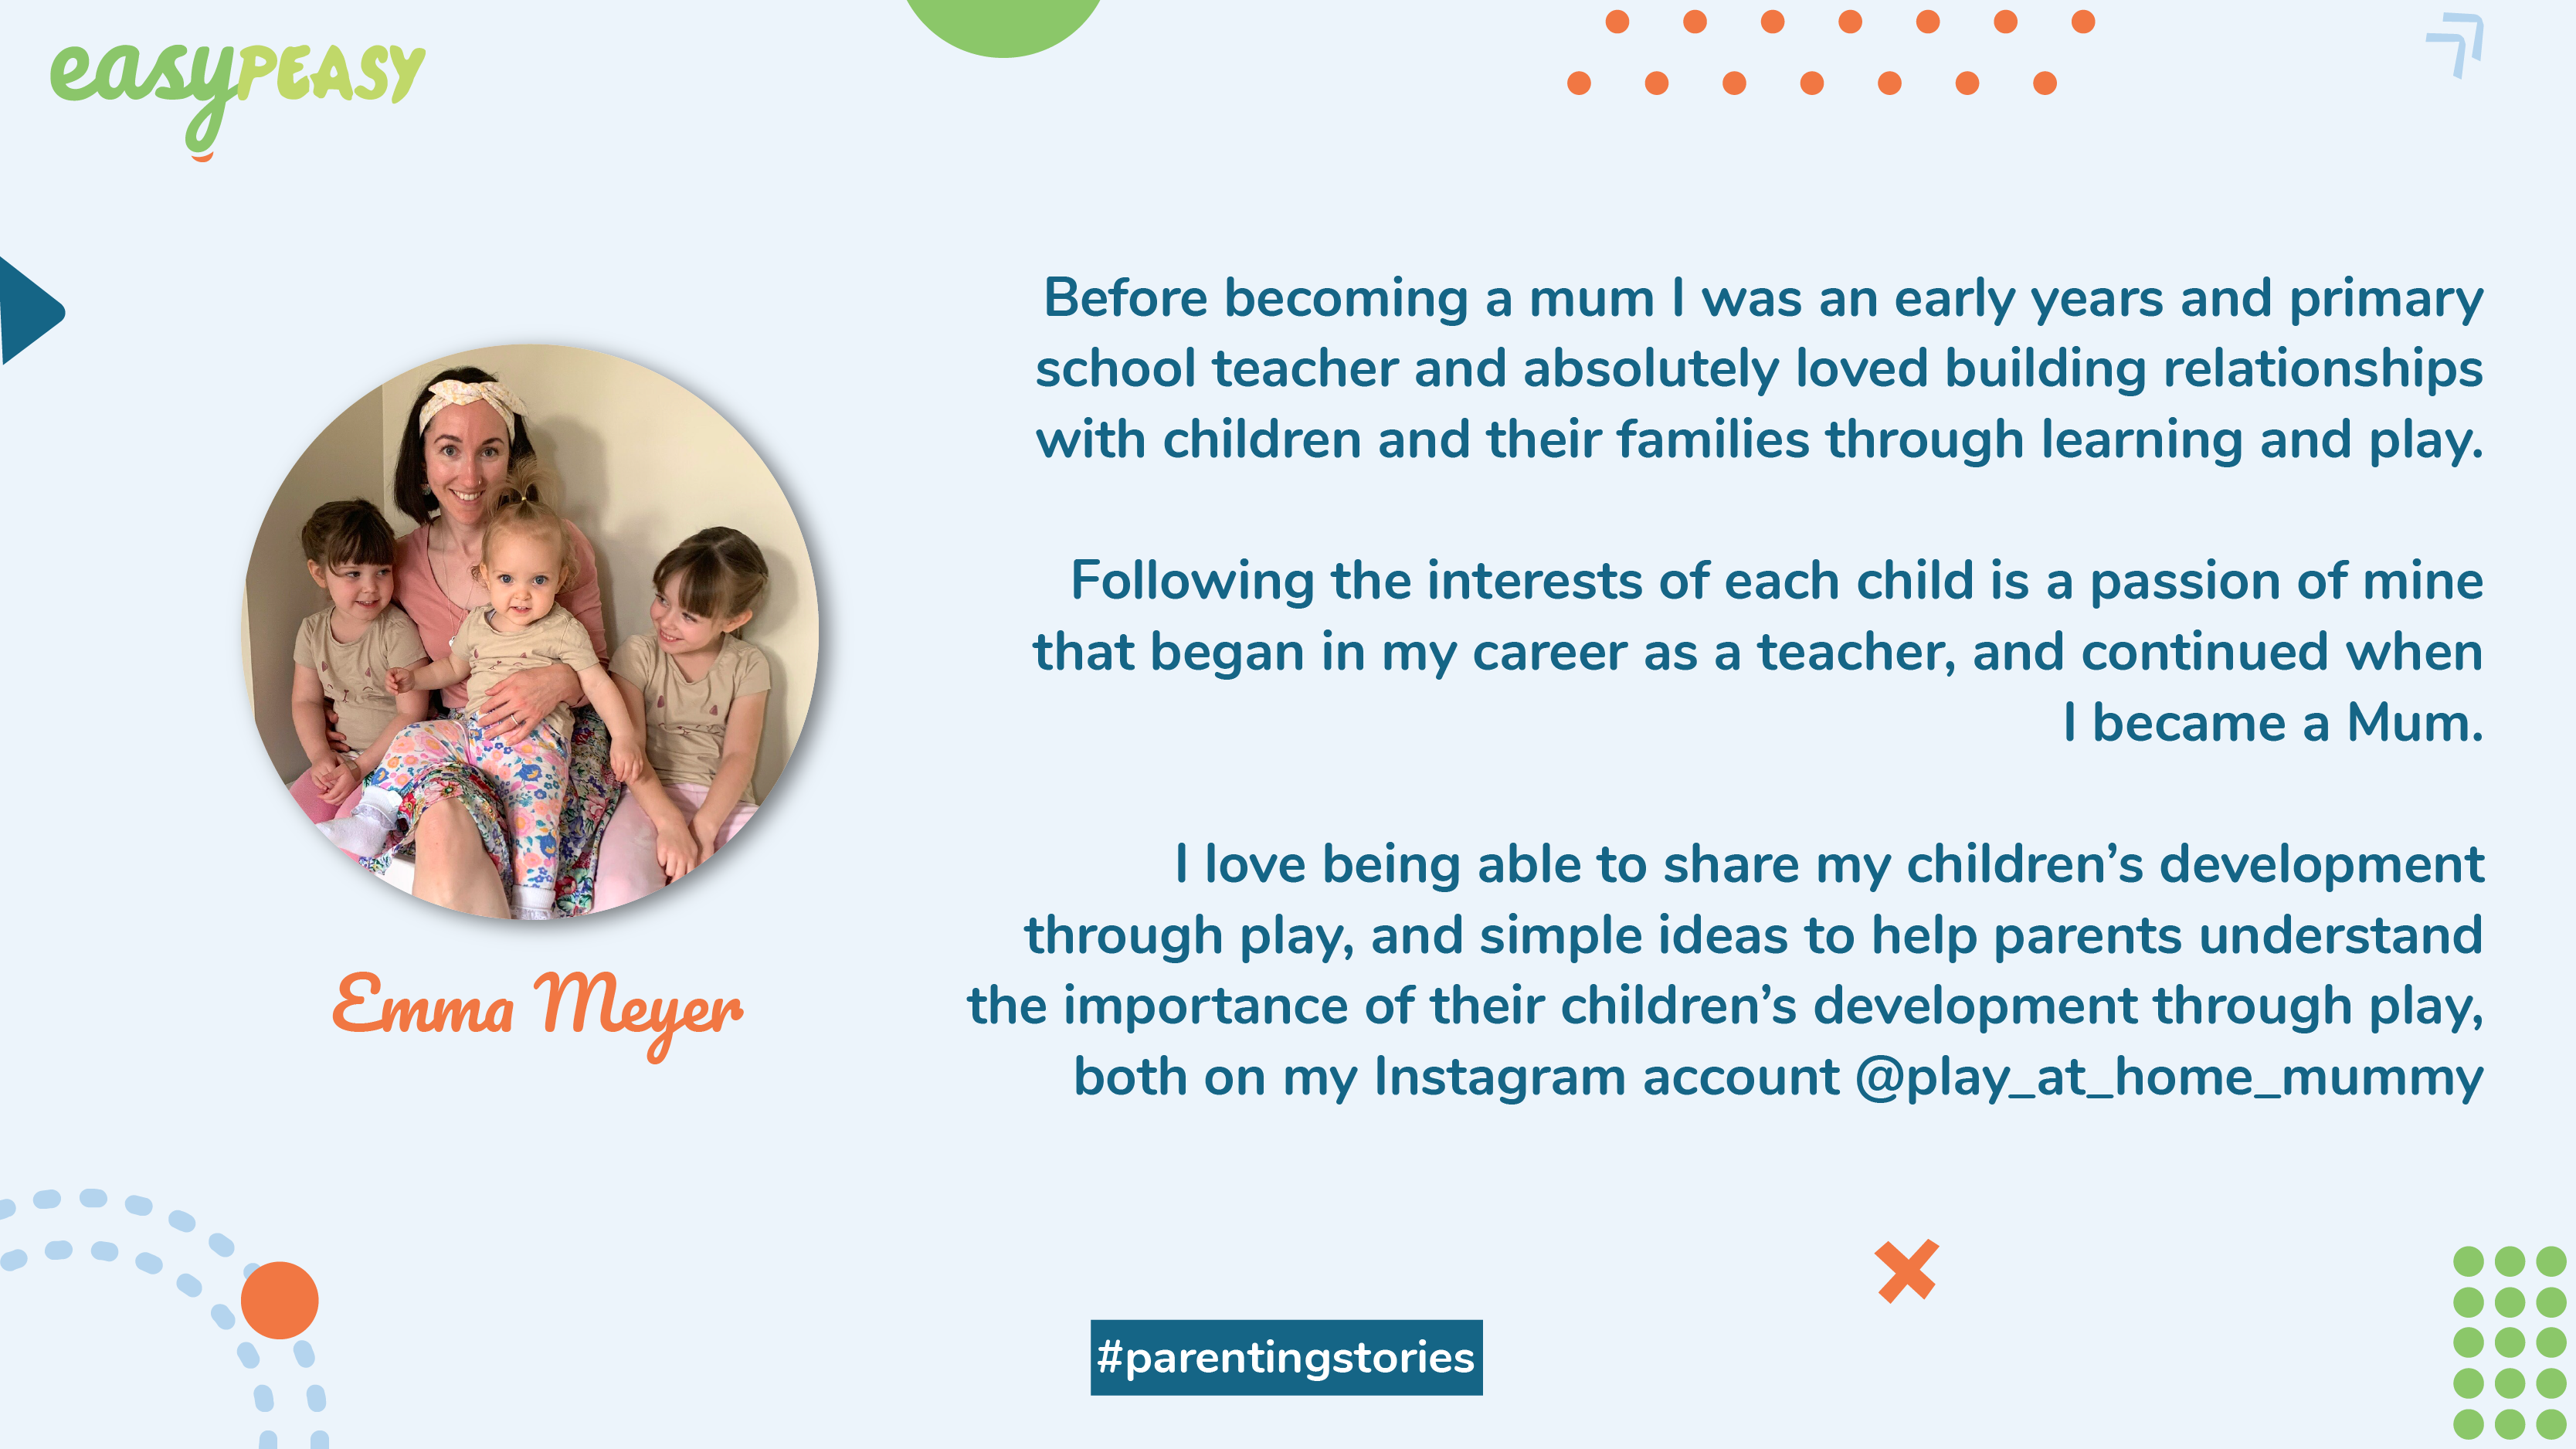 Emma Meyer parent story for Twitter